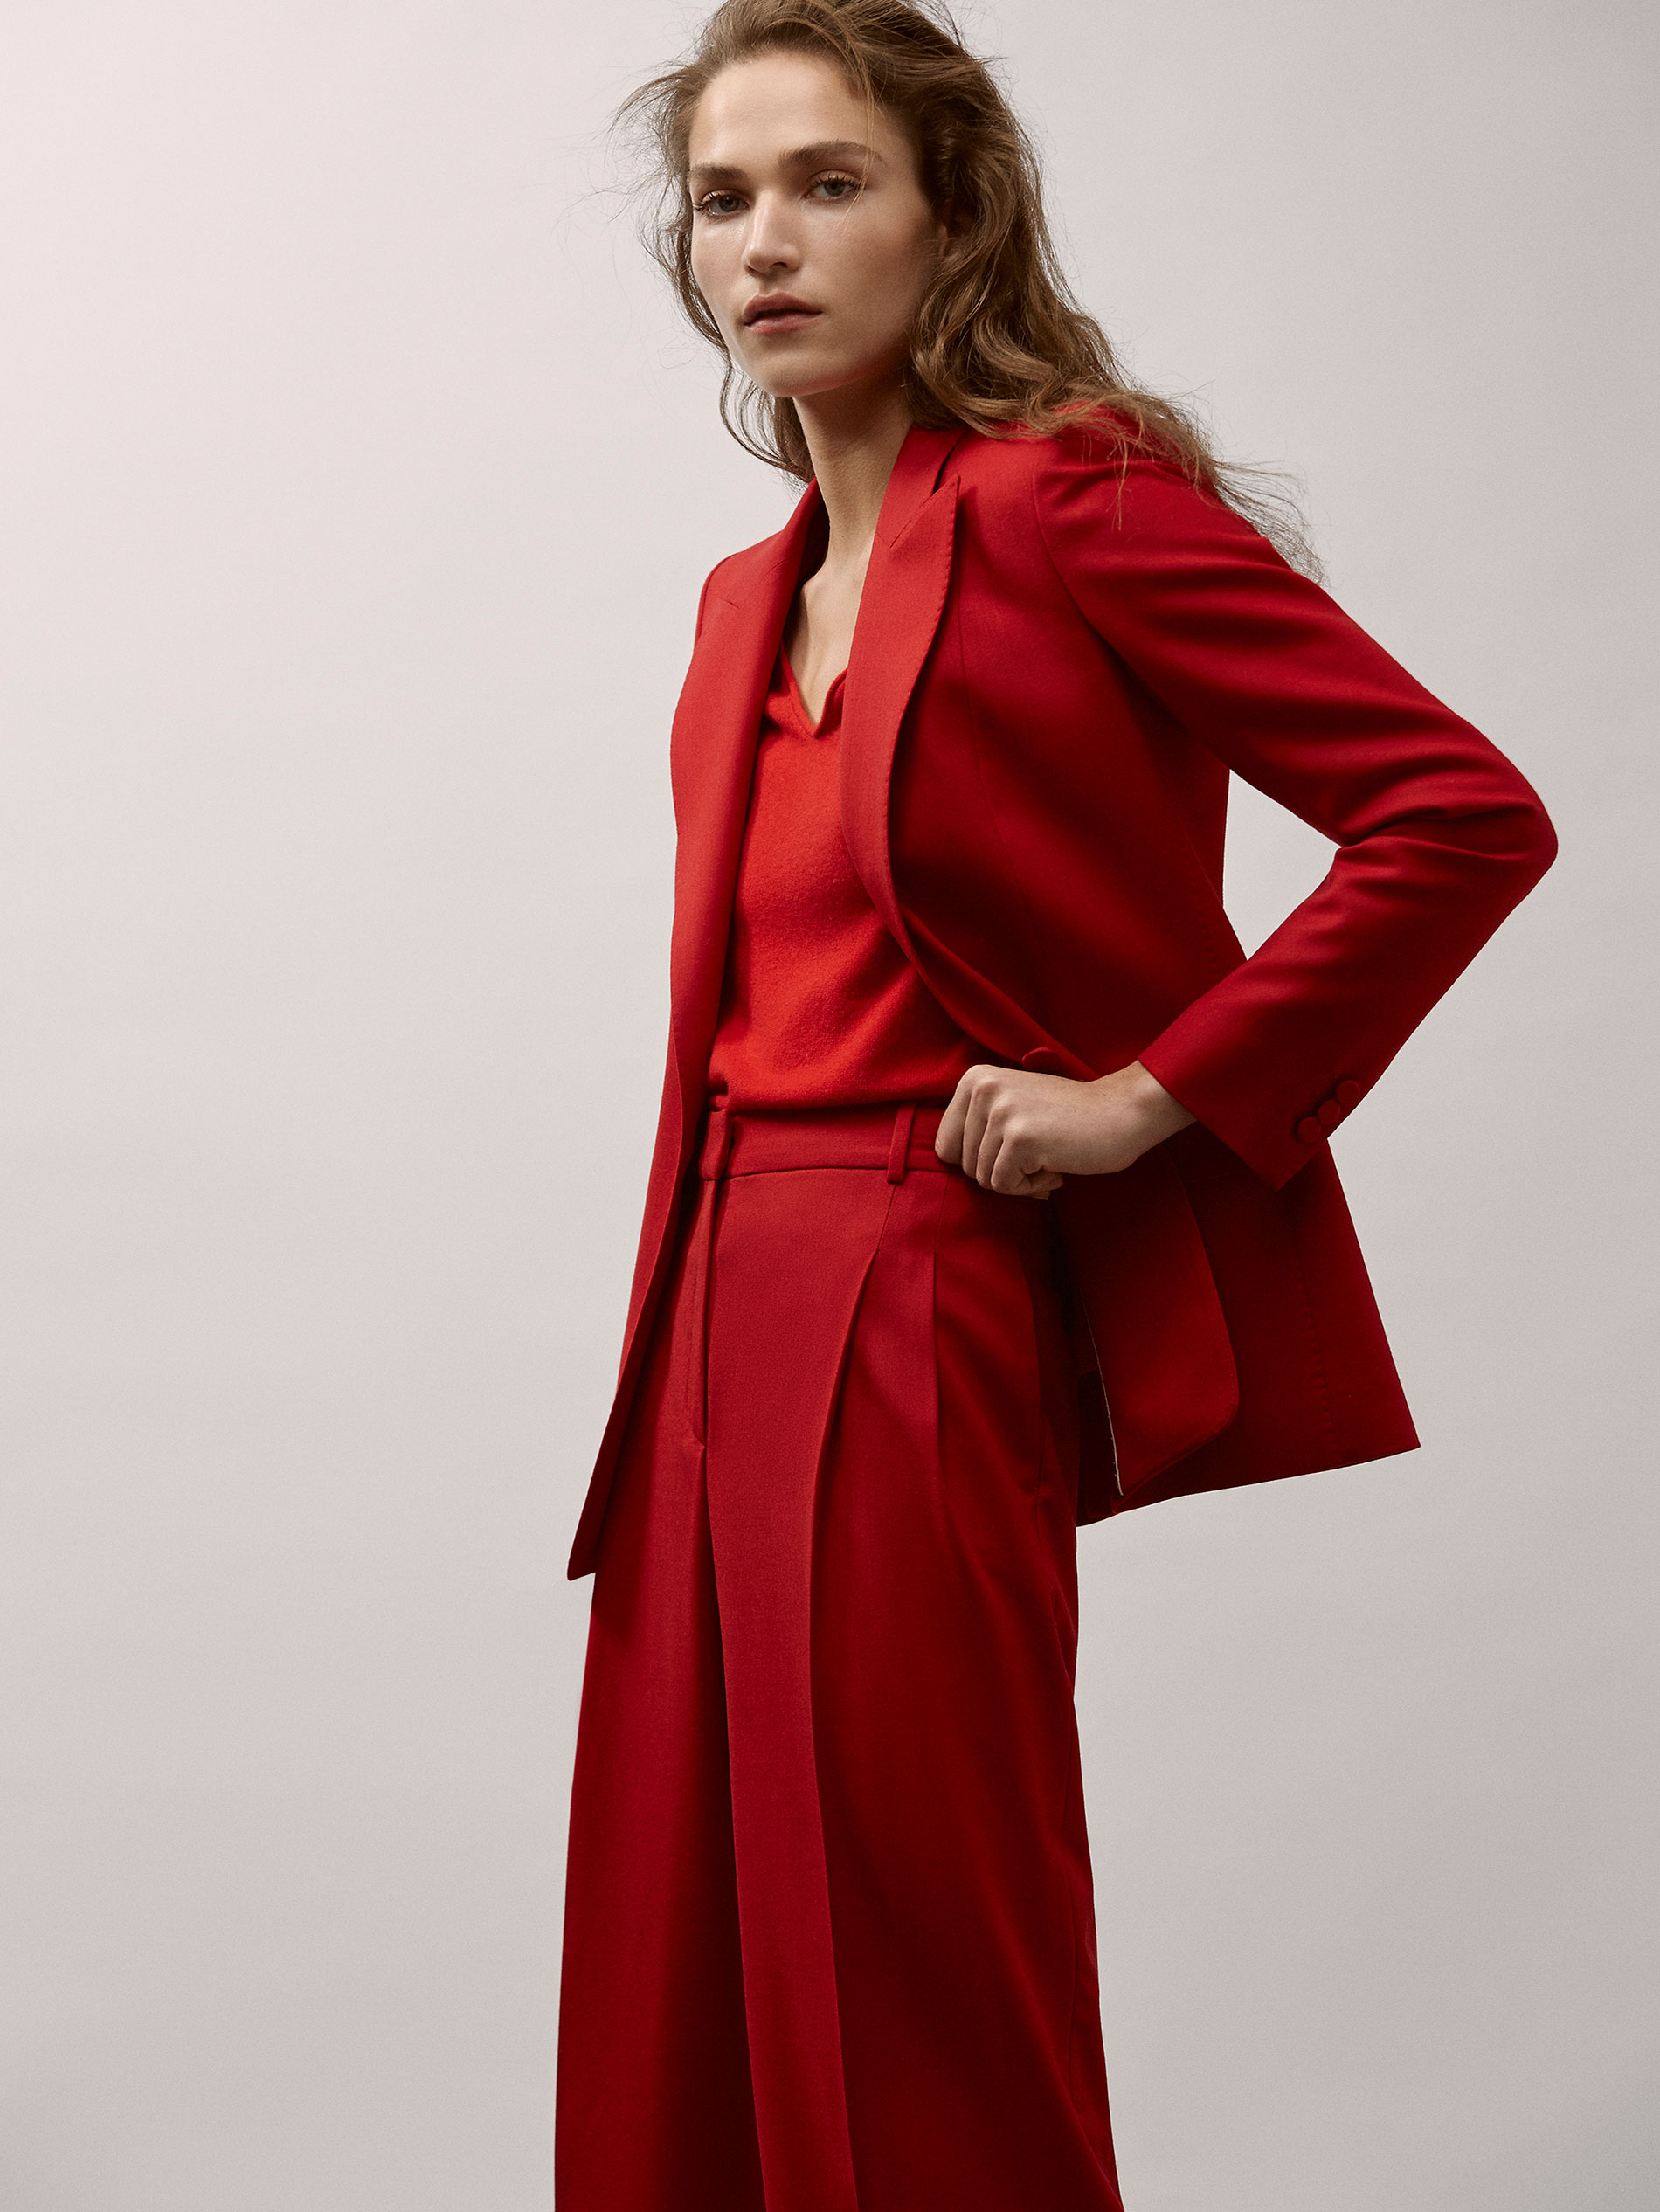 ebf3422b855 Massimo Dutti - CROPPED FIT RED WOOL SUIT TROUSERS WITH DARTS DETAIL - 1